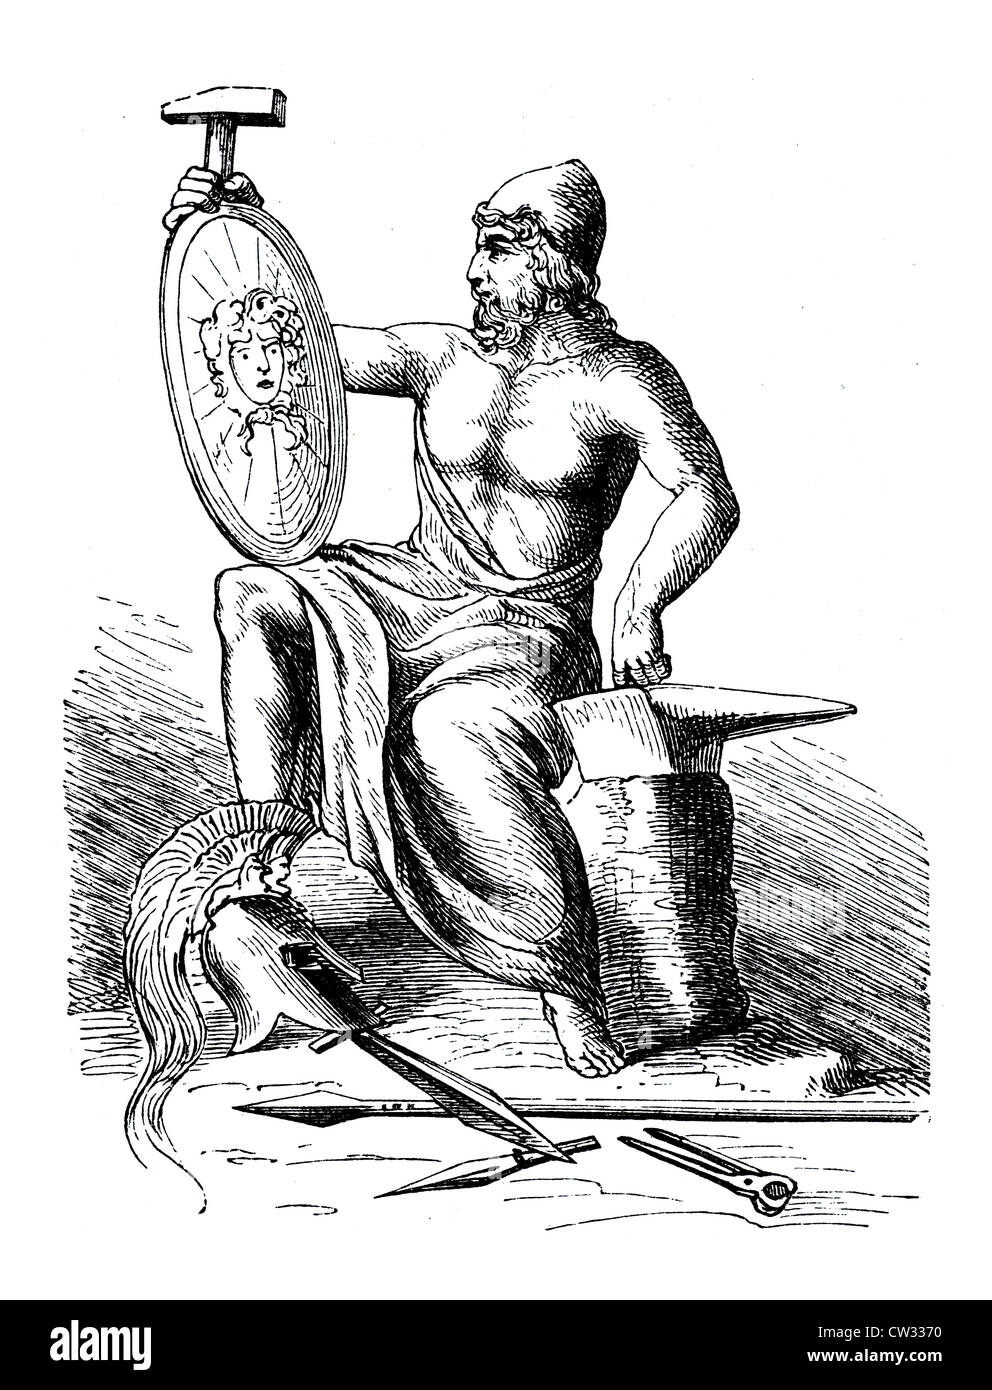 Hephaestus God Stock Photo 49855540 Alamy